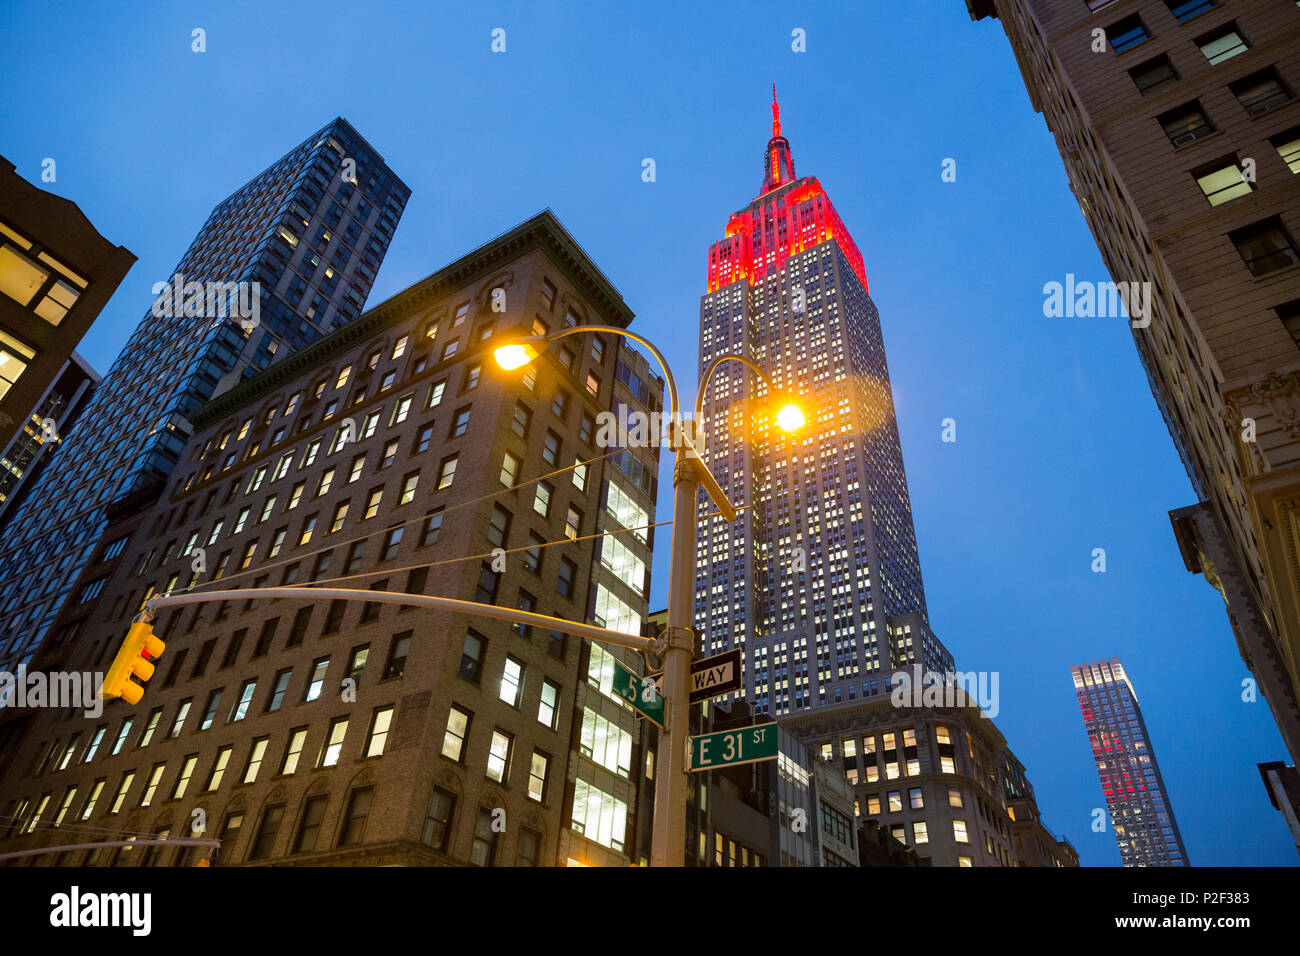 5e Avenue, 5, E 31 Street, Corner, Empire State Building, crépuscule, feu de circulation, Midtown, Manhattan, New York City, USA, Amer Banque D'Images